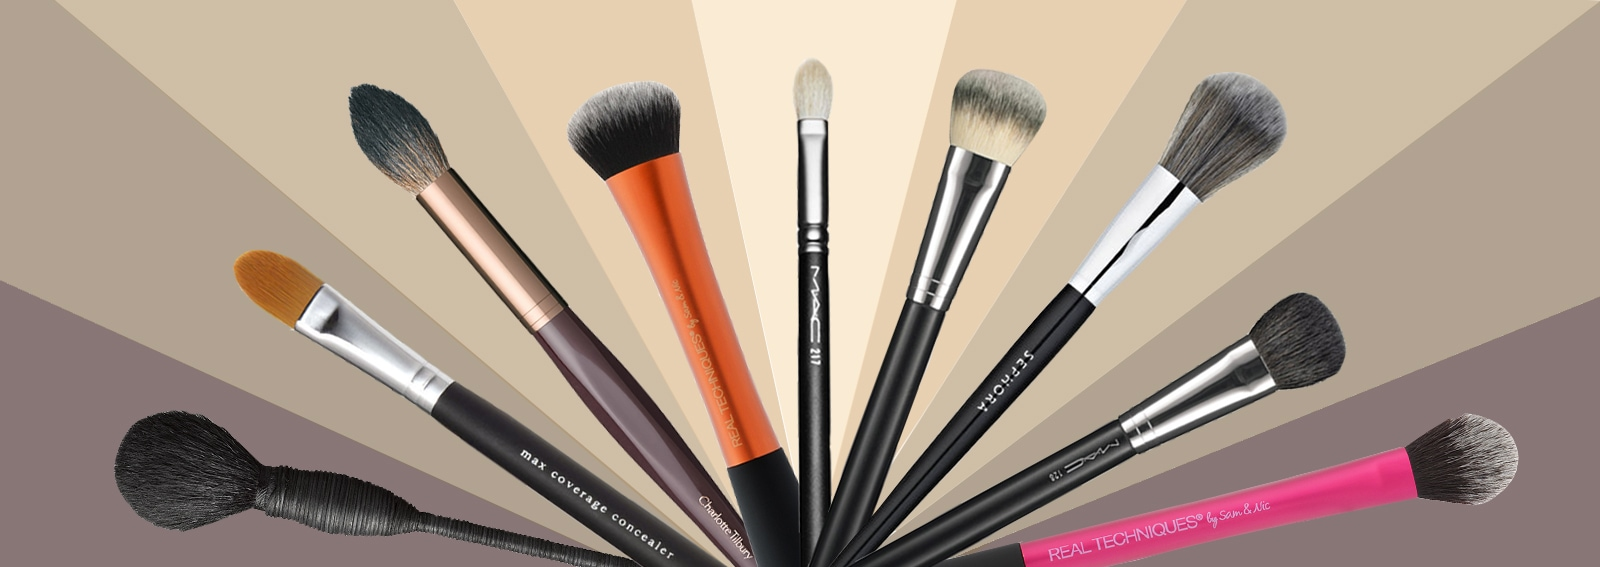 cover-BeautyMustHaves:imiglioripennelli-desktop